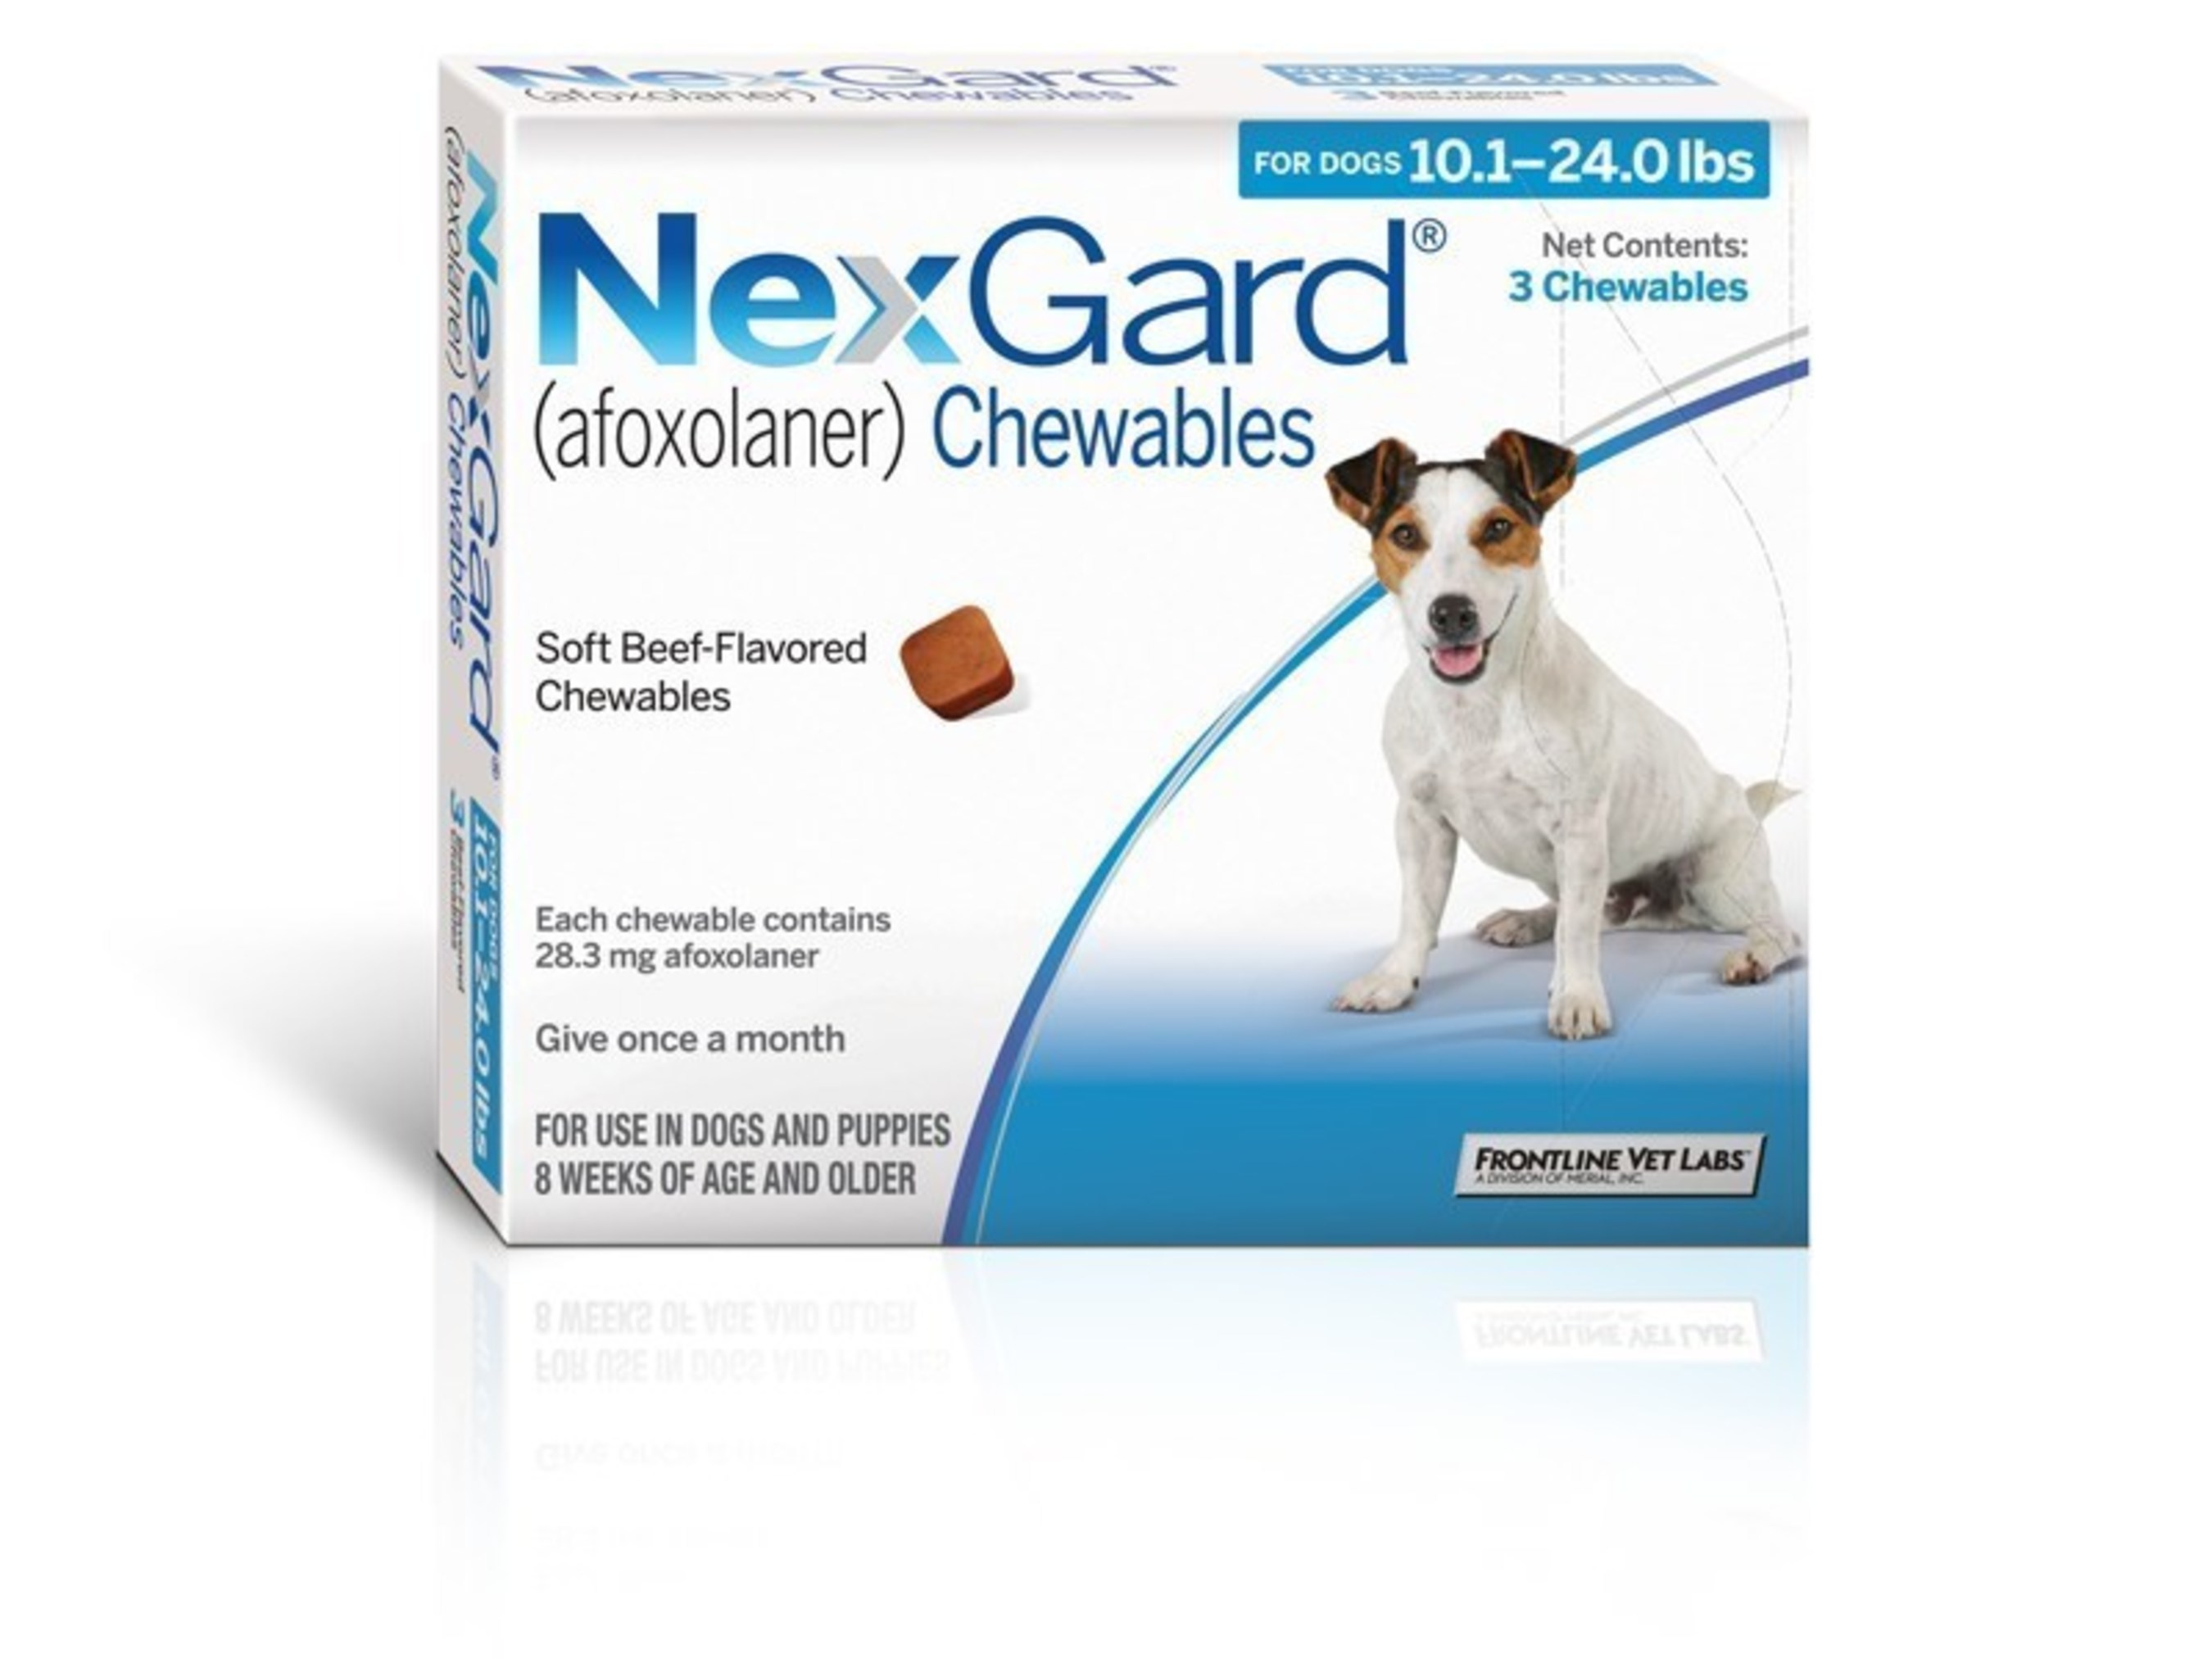 Nexgard Afoxolaner Receives The 2015 Better Homes And Gardens Best New Product Award